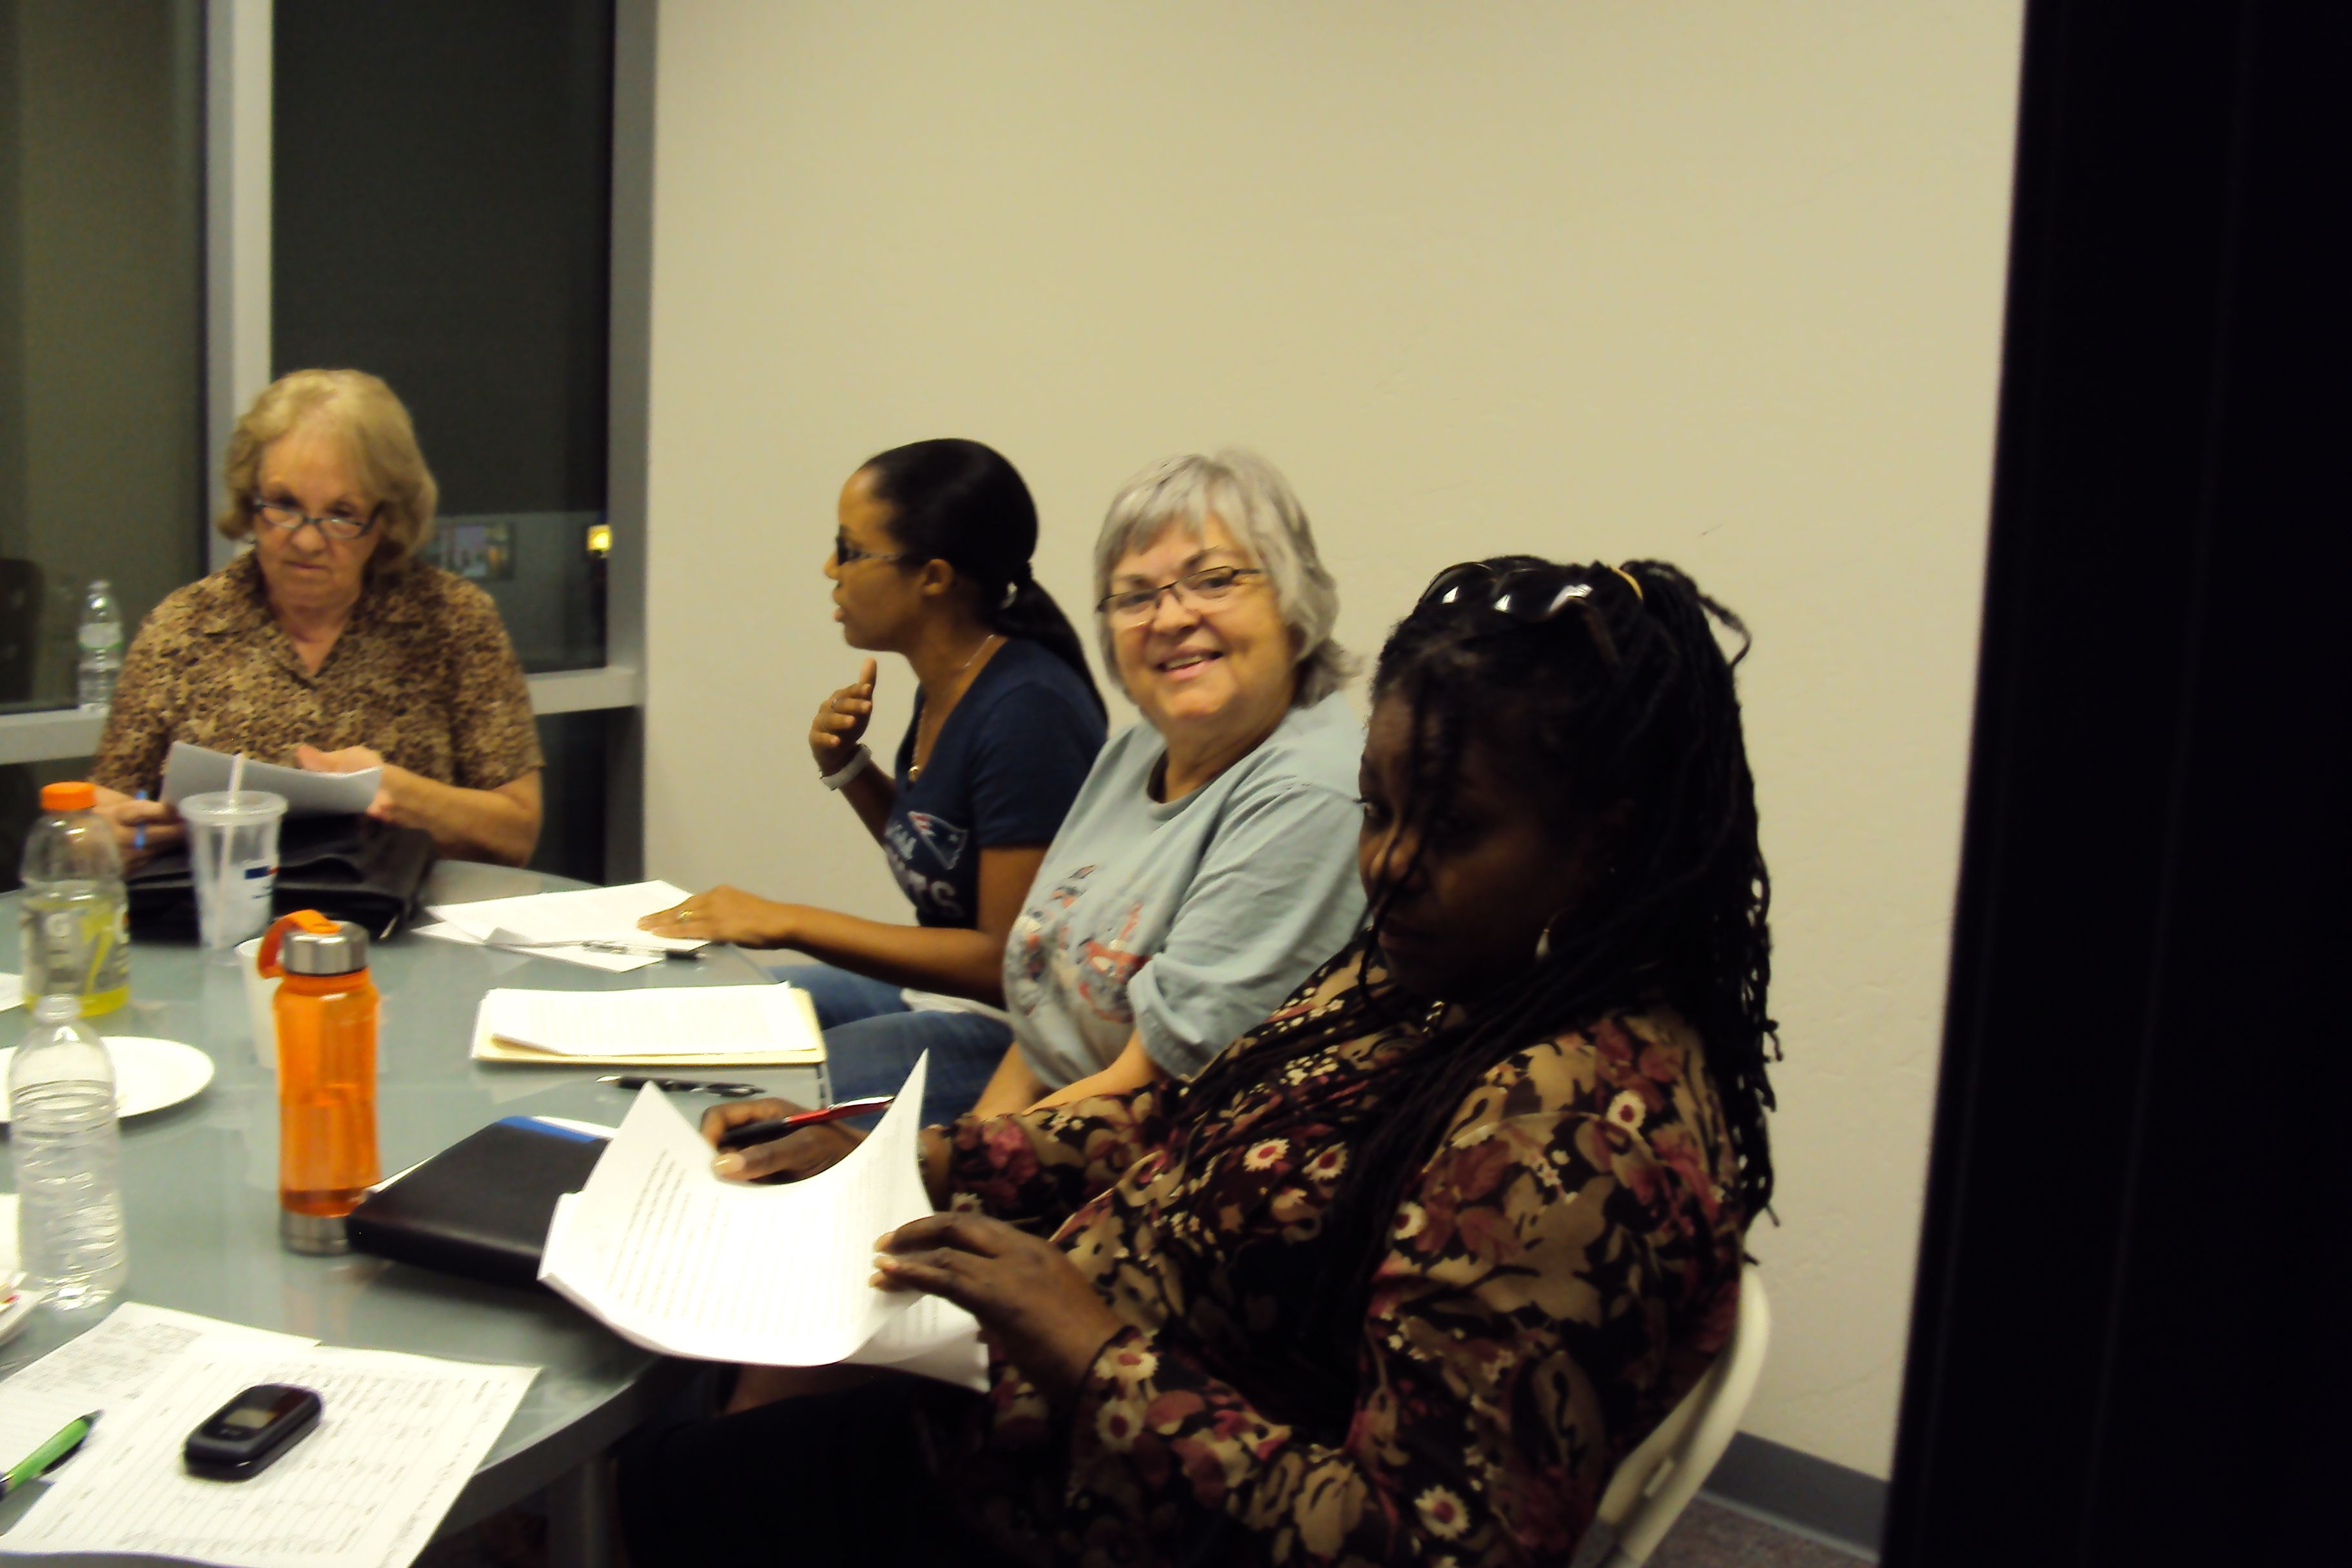 West Valley Writer's Critique Group